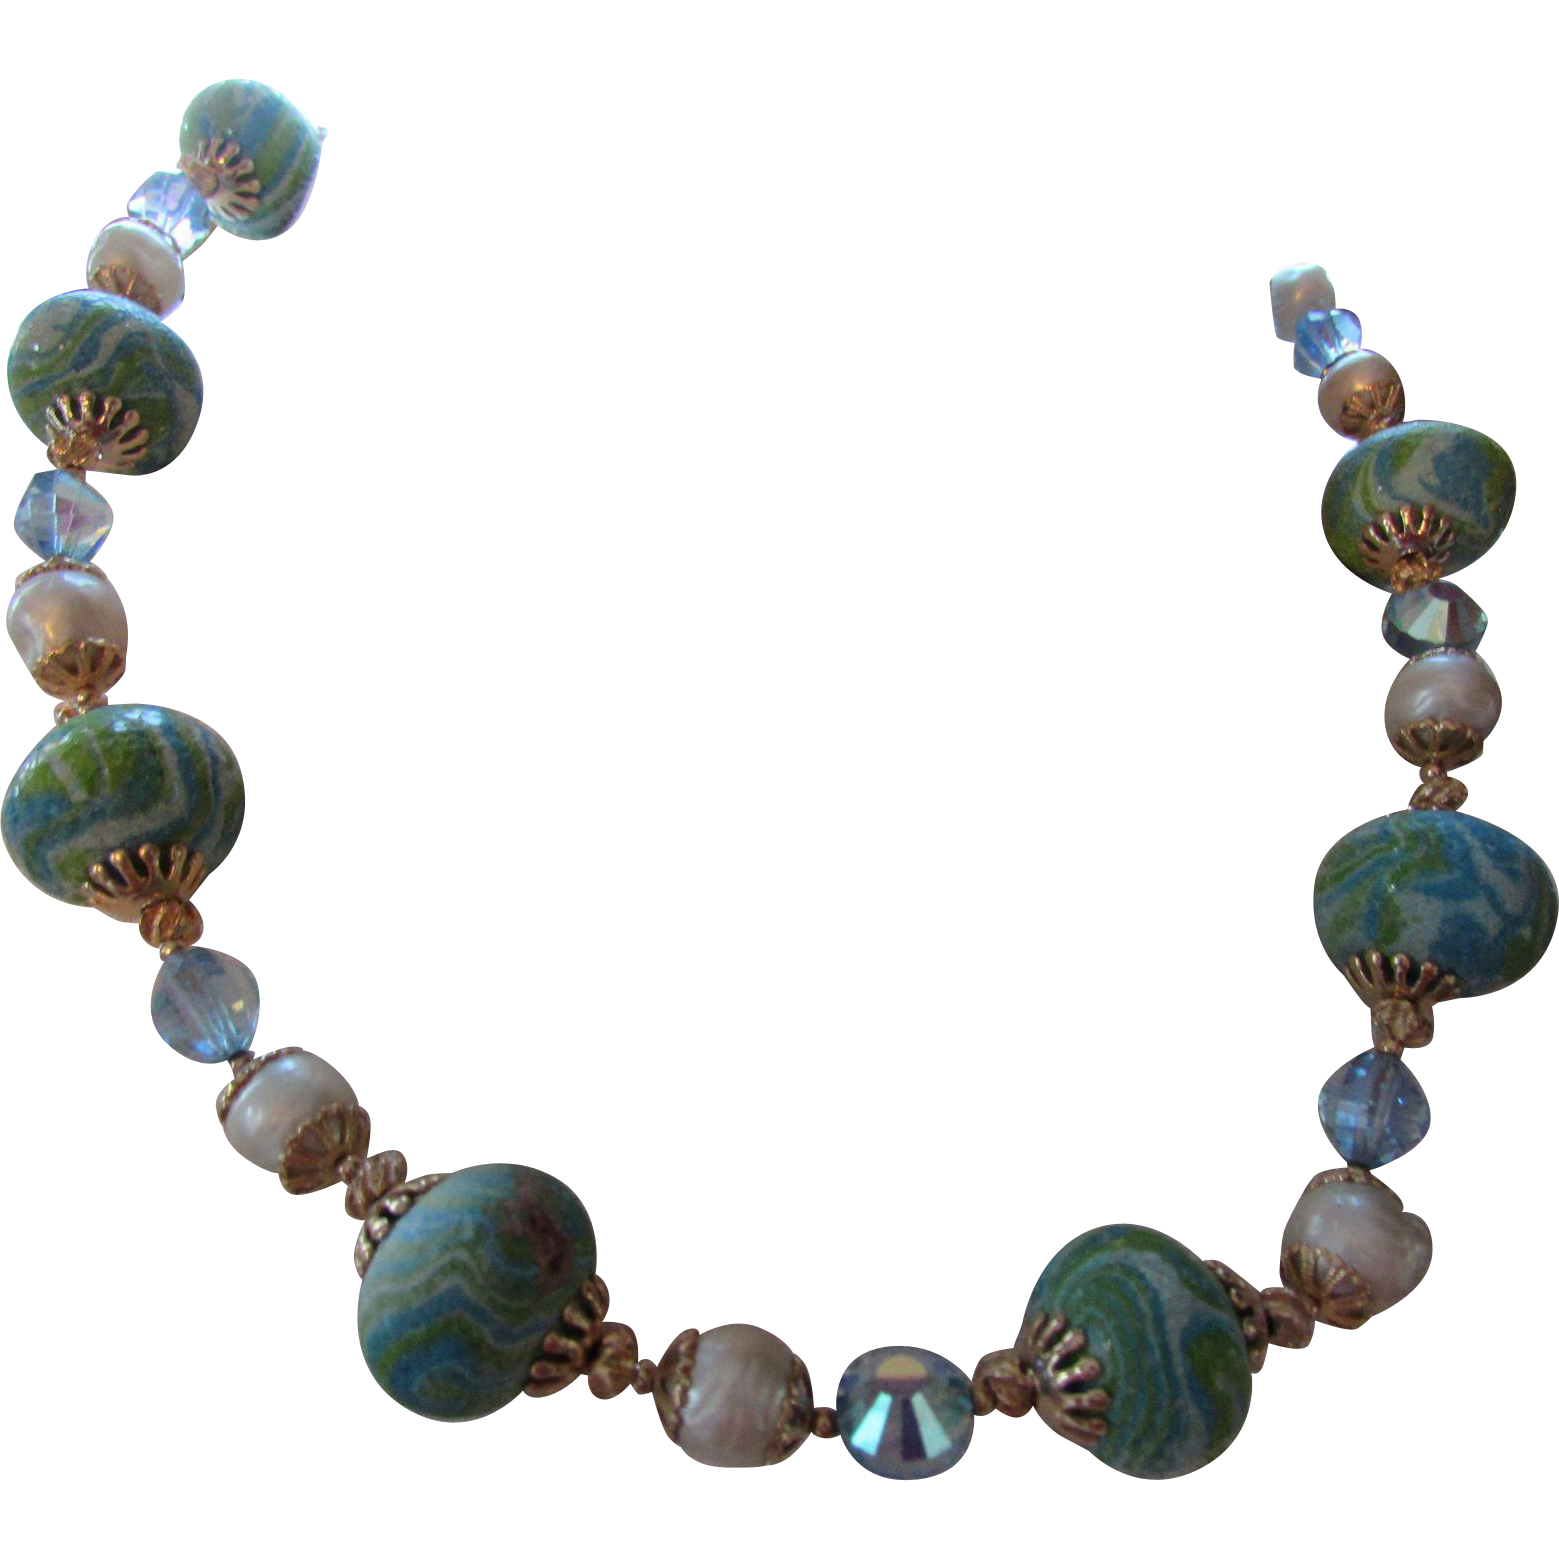 Vendome Necklace in Sea Colors of Blue and Green with Faux Pearls Flower Blossom Hook